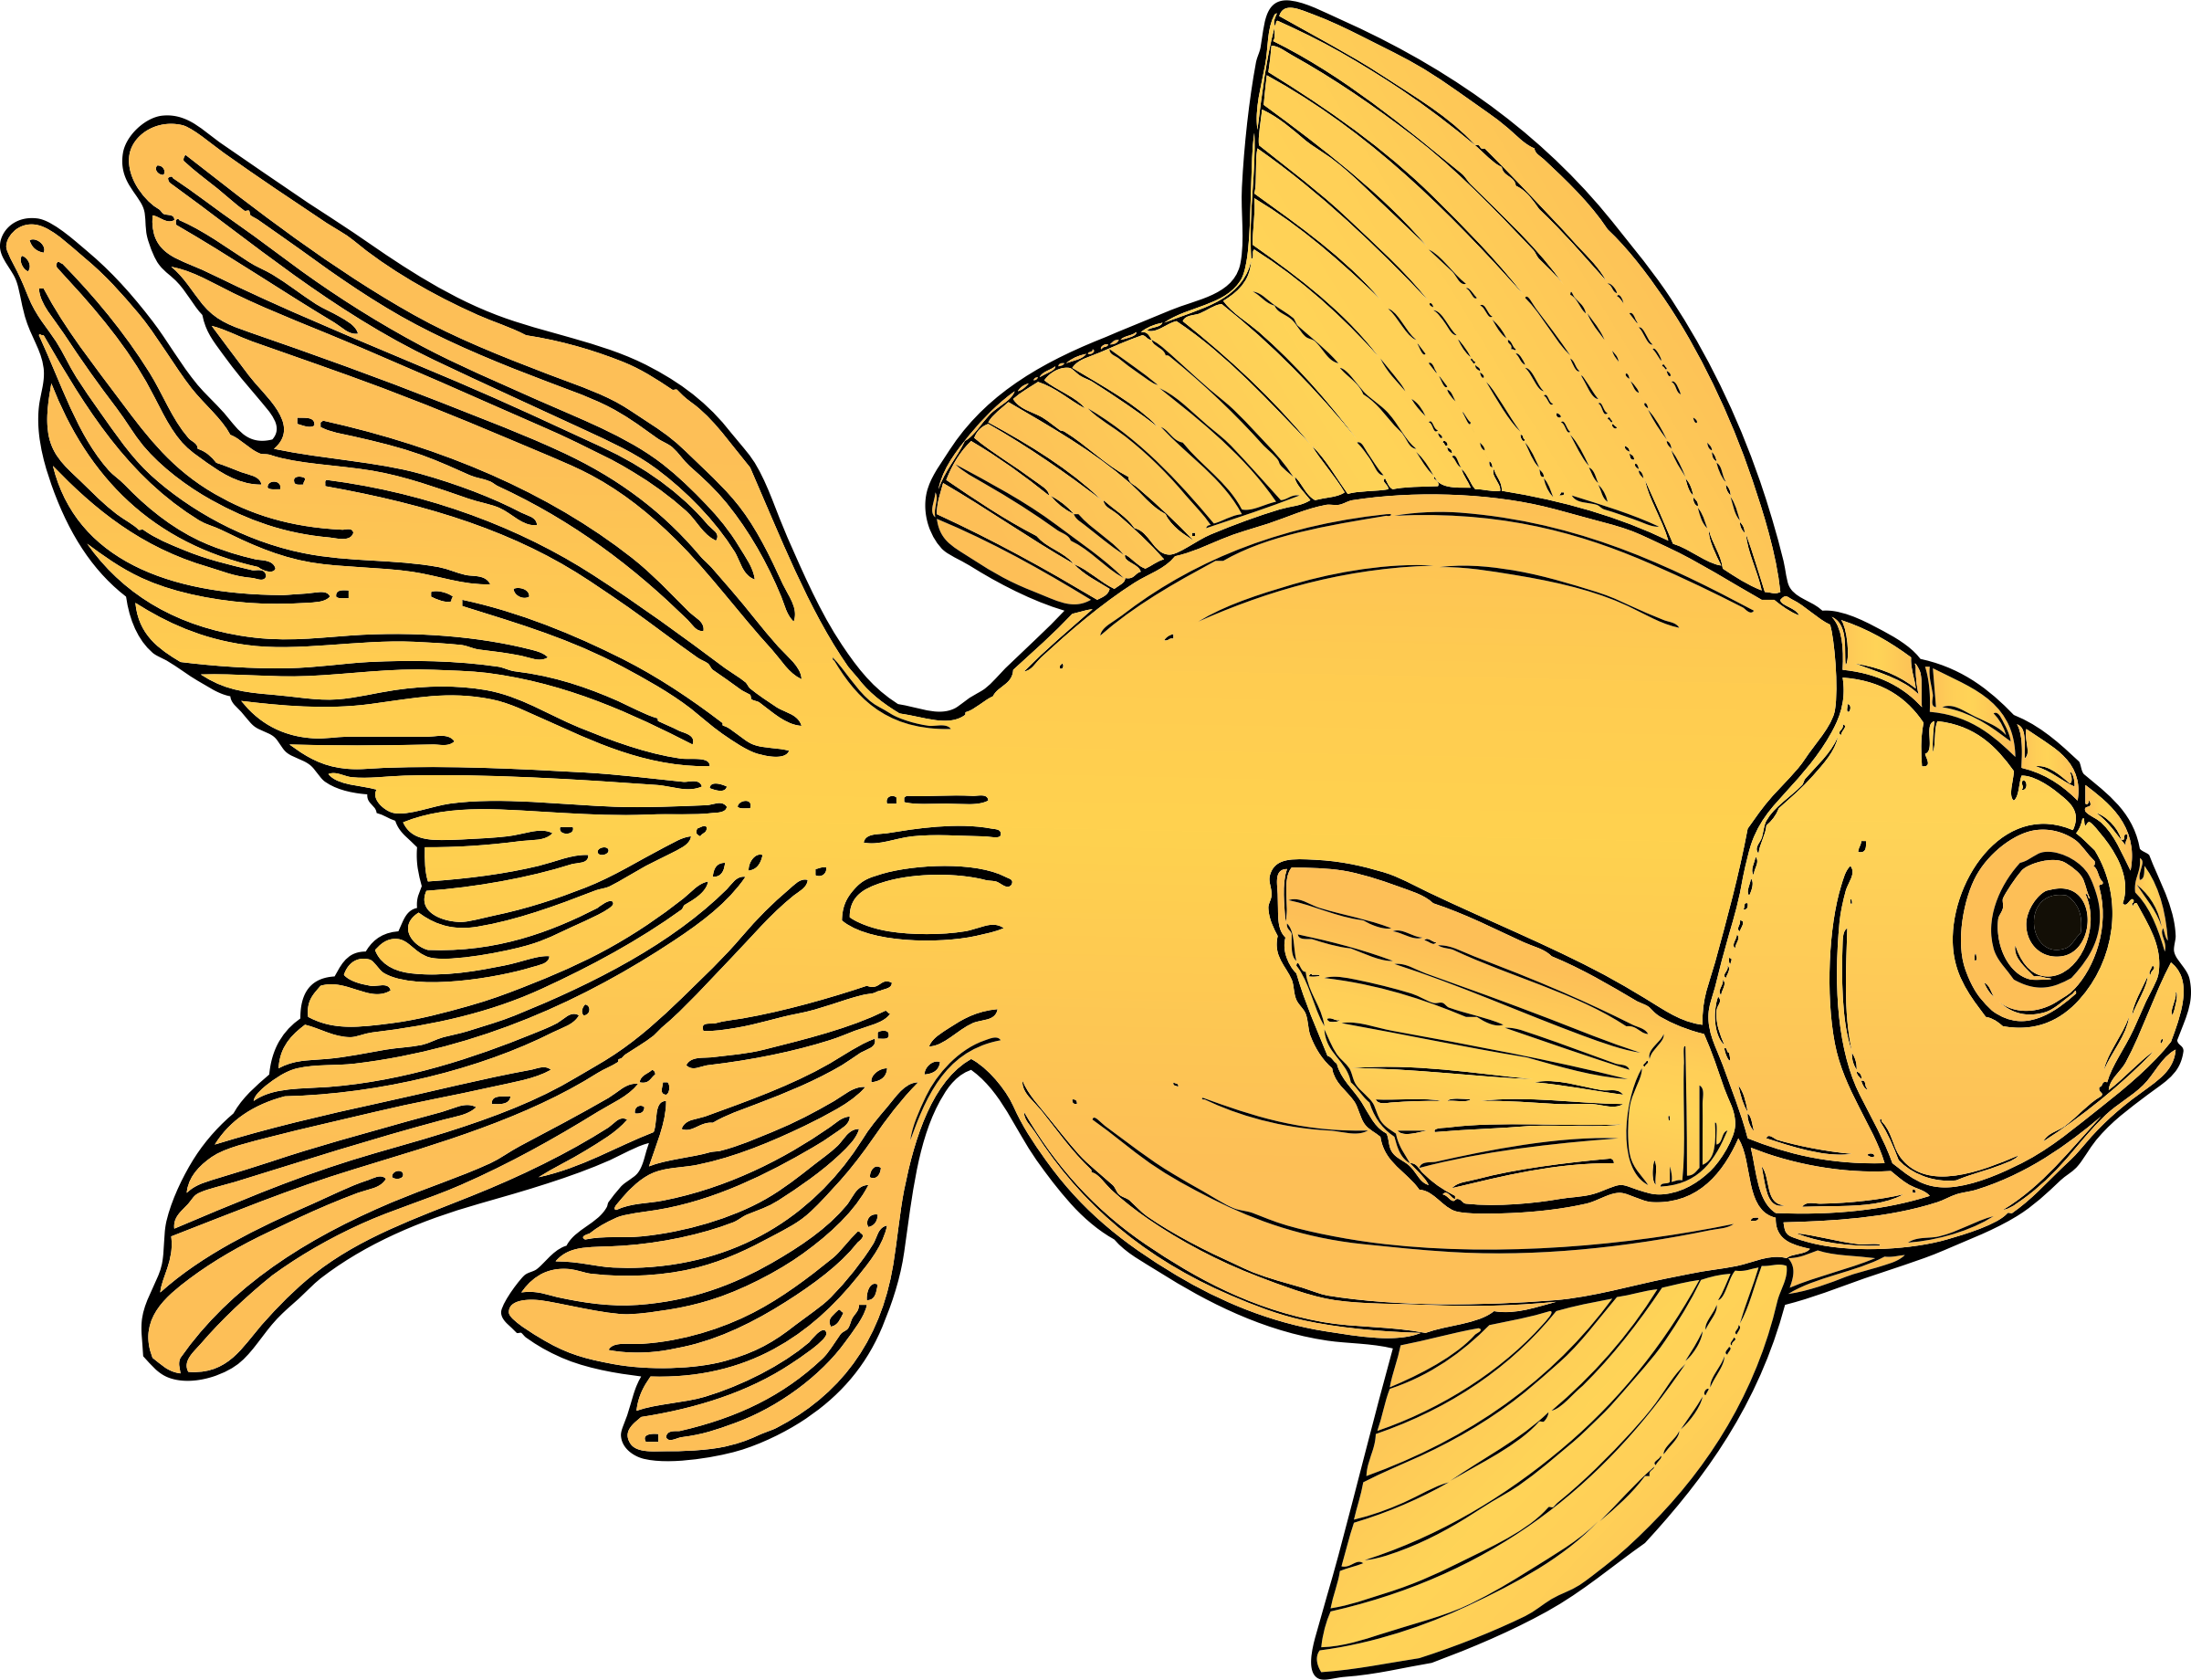 Mindful drawing decorative fish. Image result for fanciful